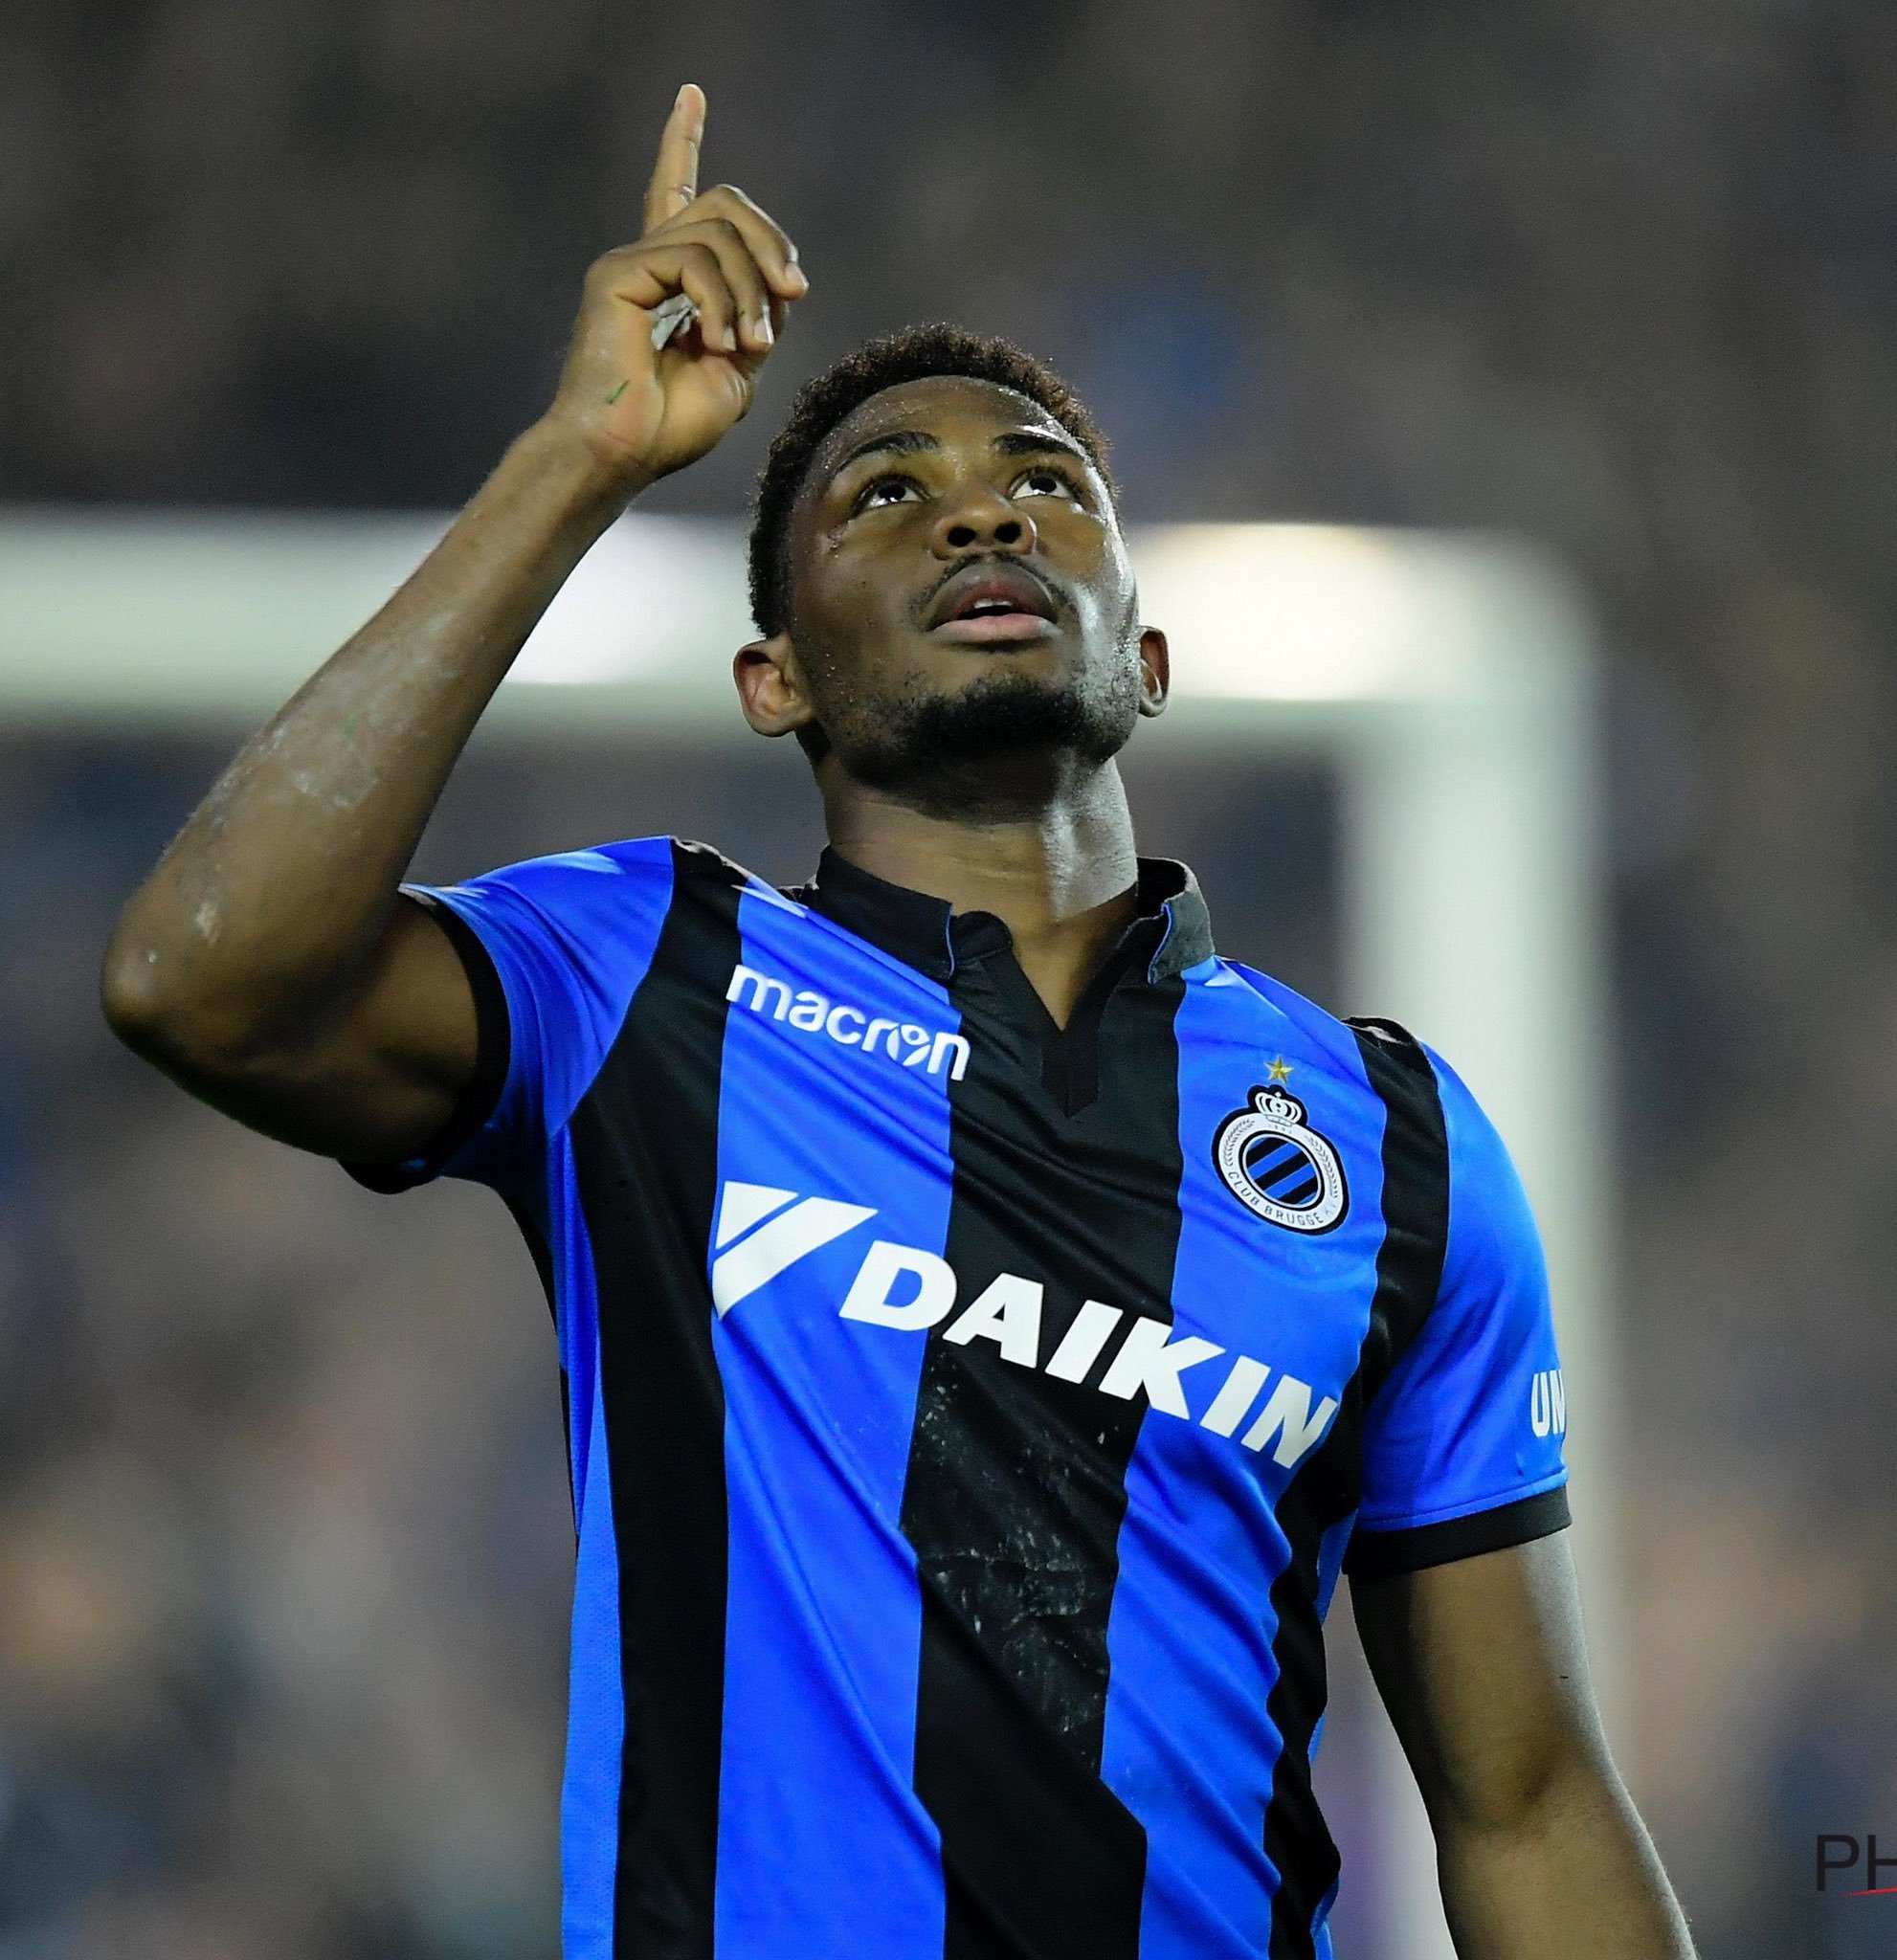 UCL Play-Offs: Dennis Helps Brugge Seal Group Stage Spot, Olayinka's Slavia Prague Also Through